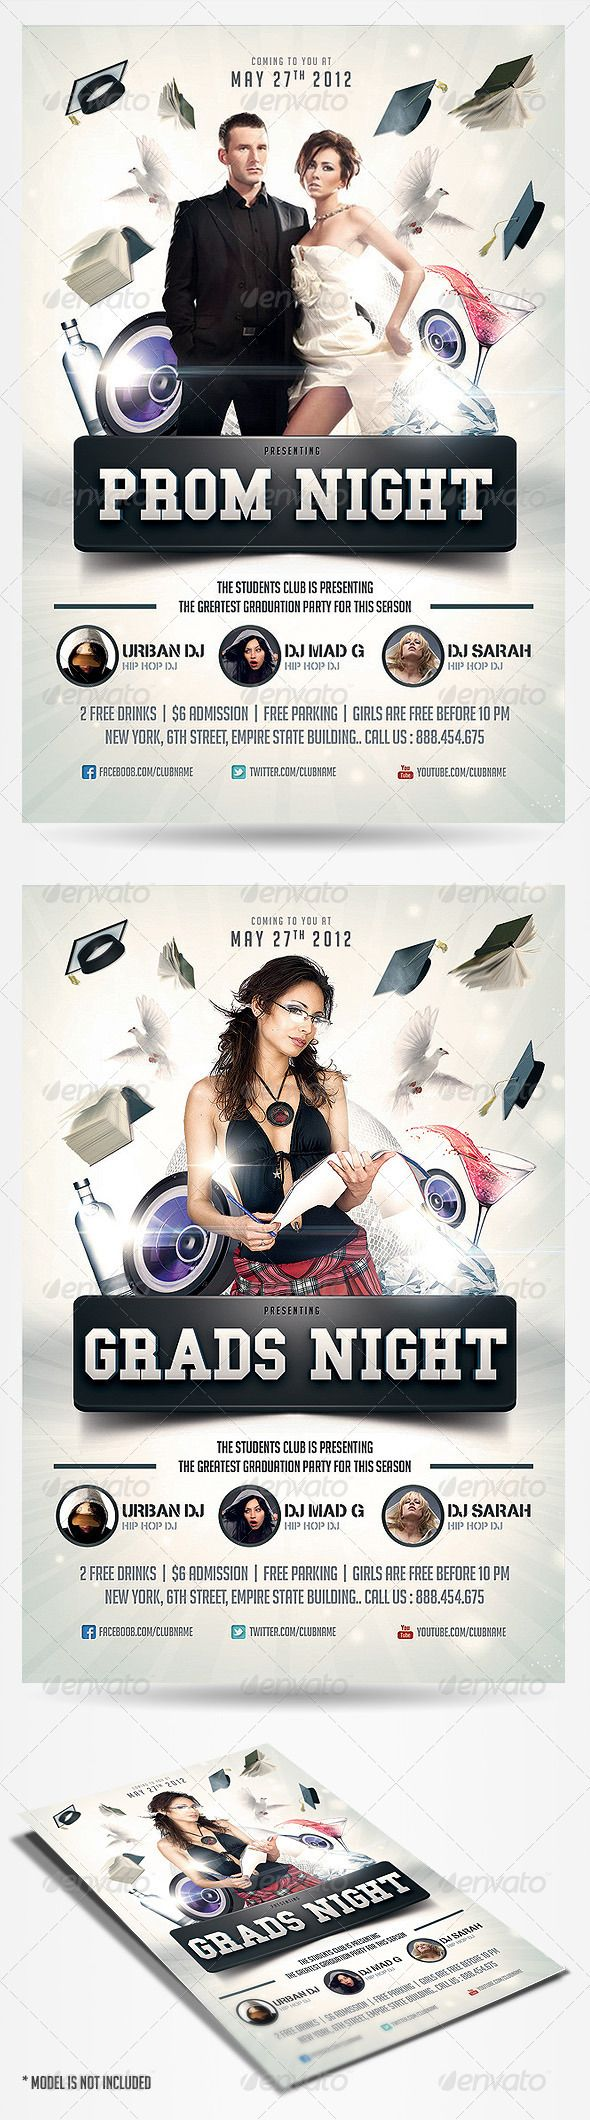 graduation prom flyer fonts texts and photoshop graduation prom flyer graphicriver item for